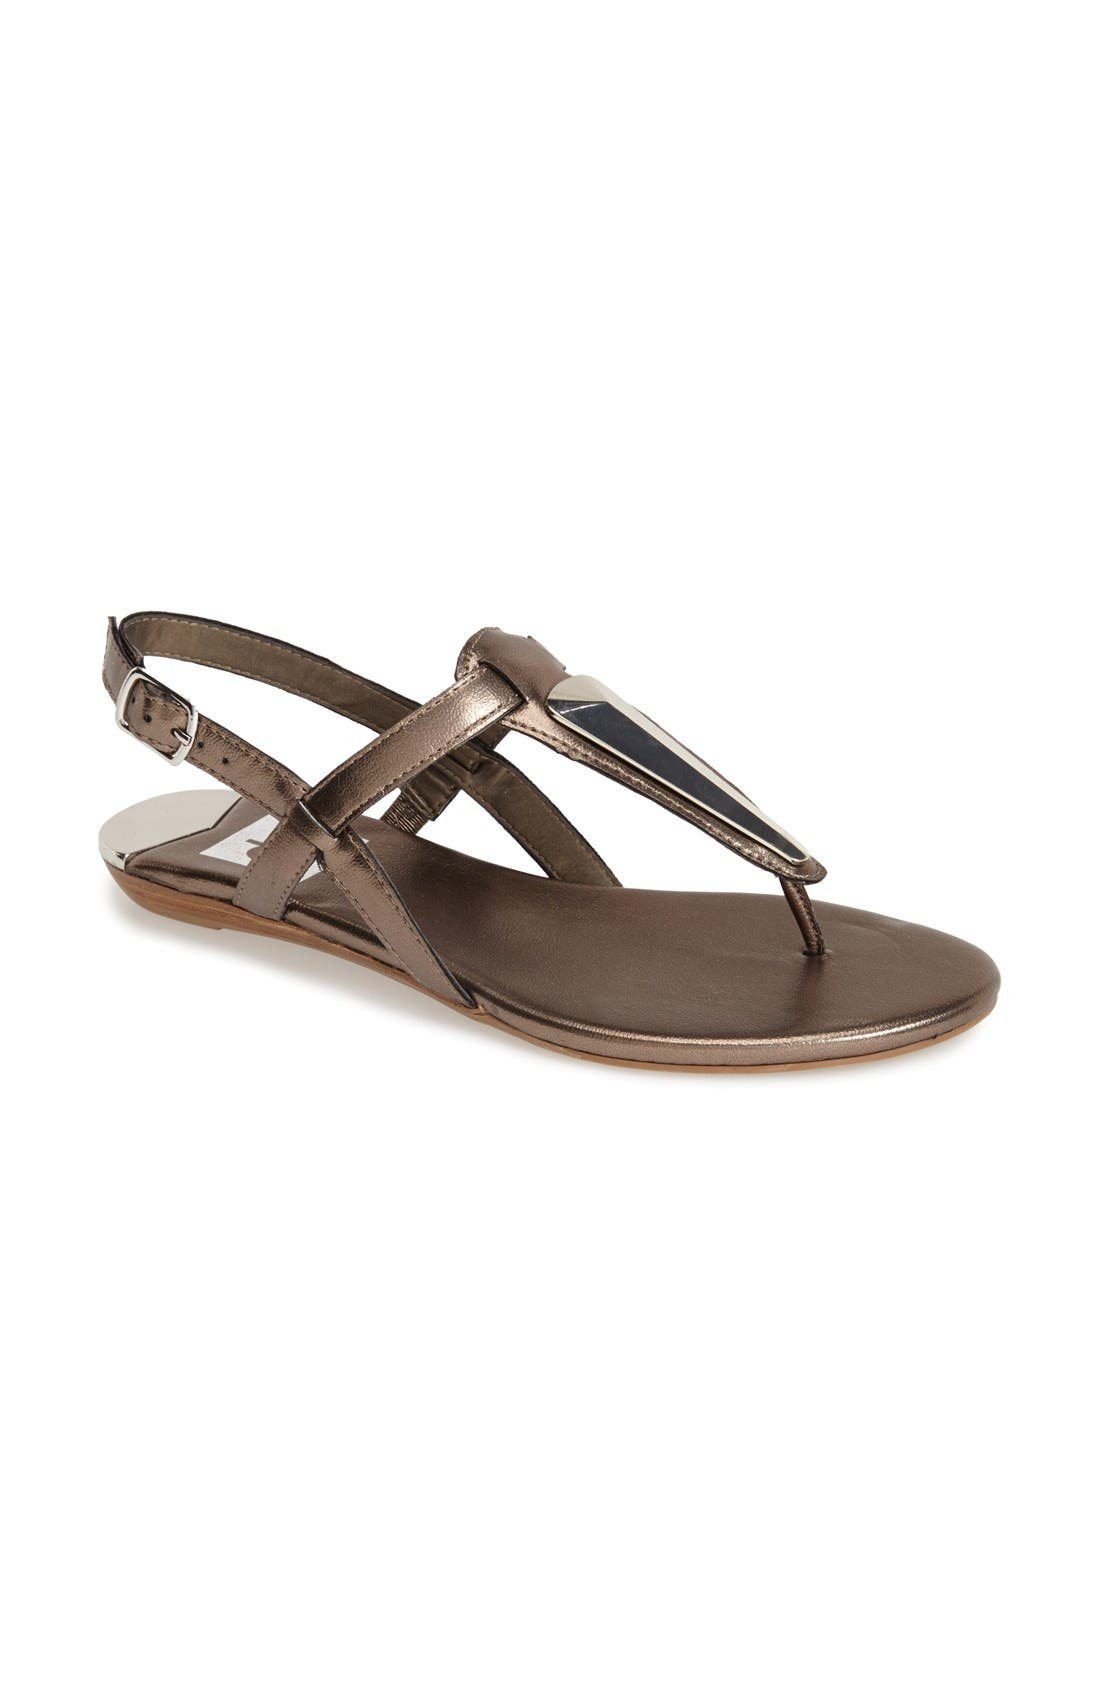 Alternate Image 1 Selected - DV by Dolce Vita 'Allura' Thong Sandal (Women)